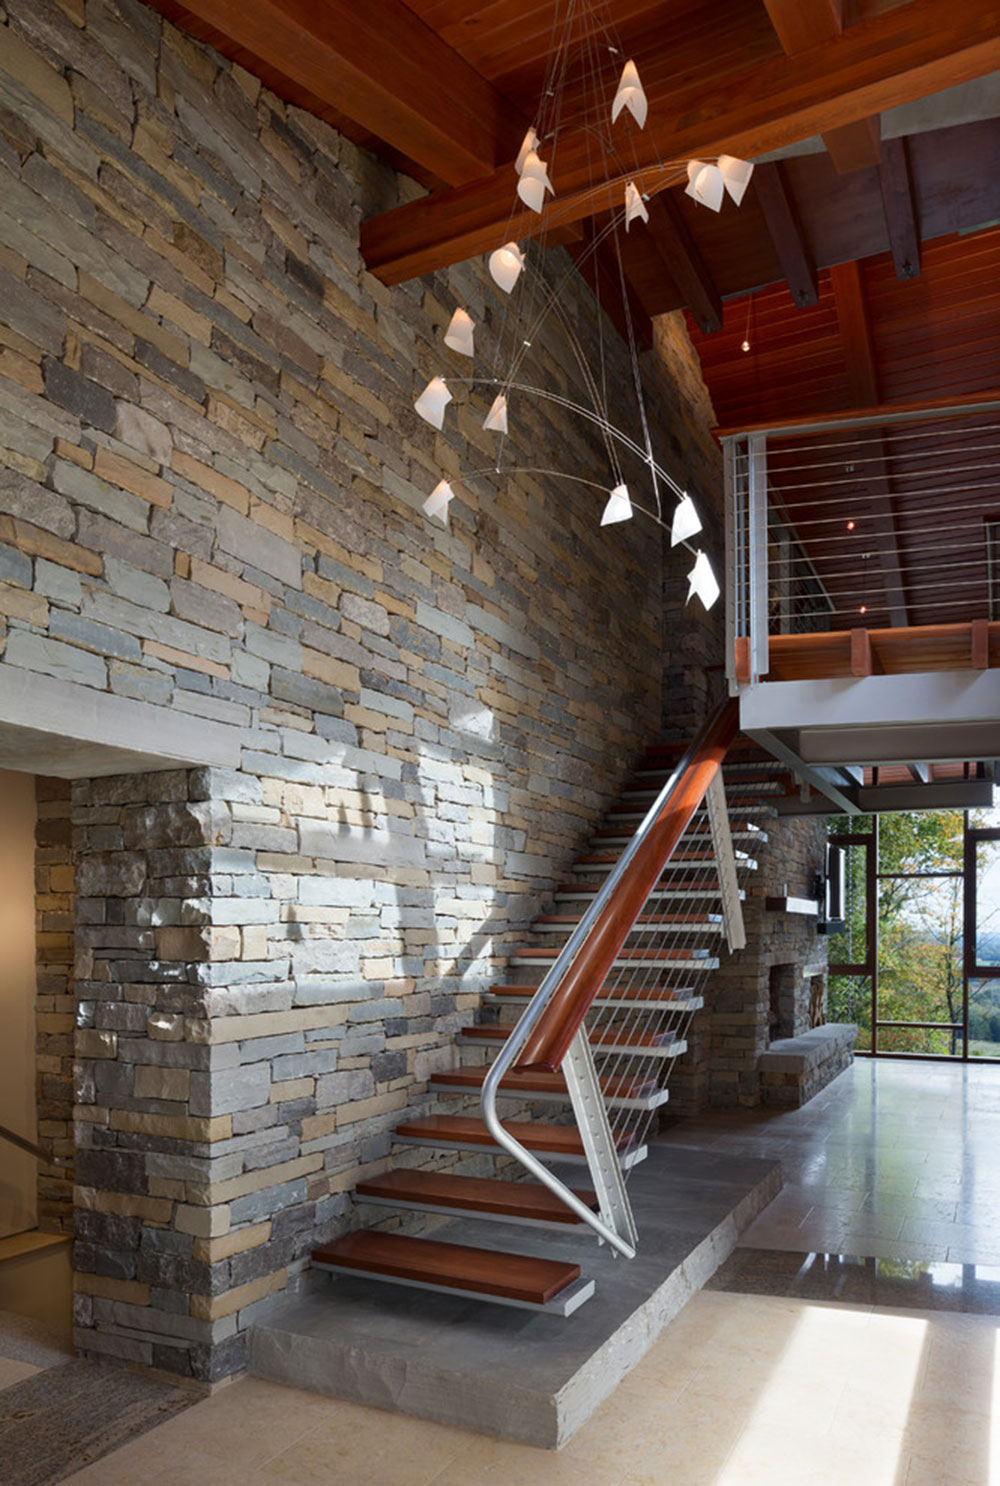 Modern And Exquisite Floating Staircase15 Modern And Exquisite Floating  Staircase Designs